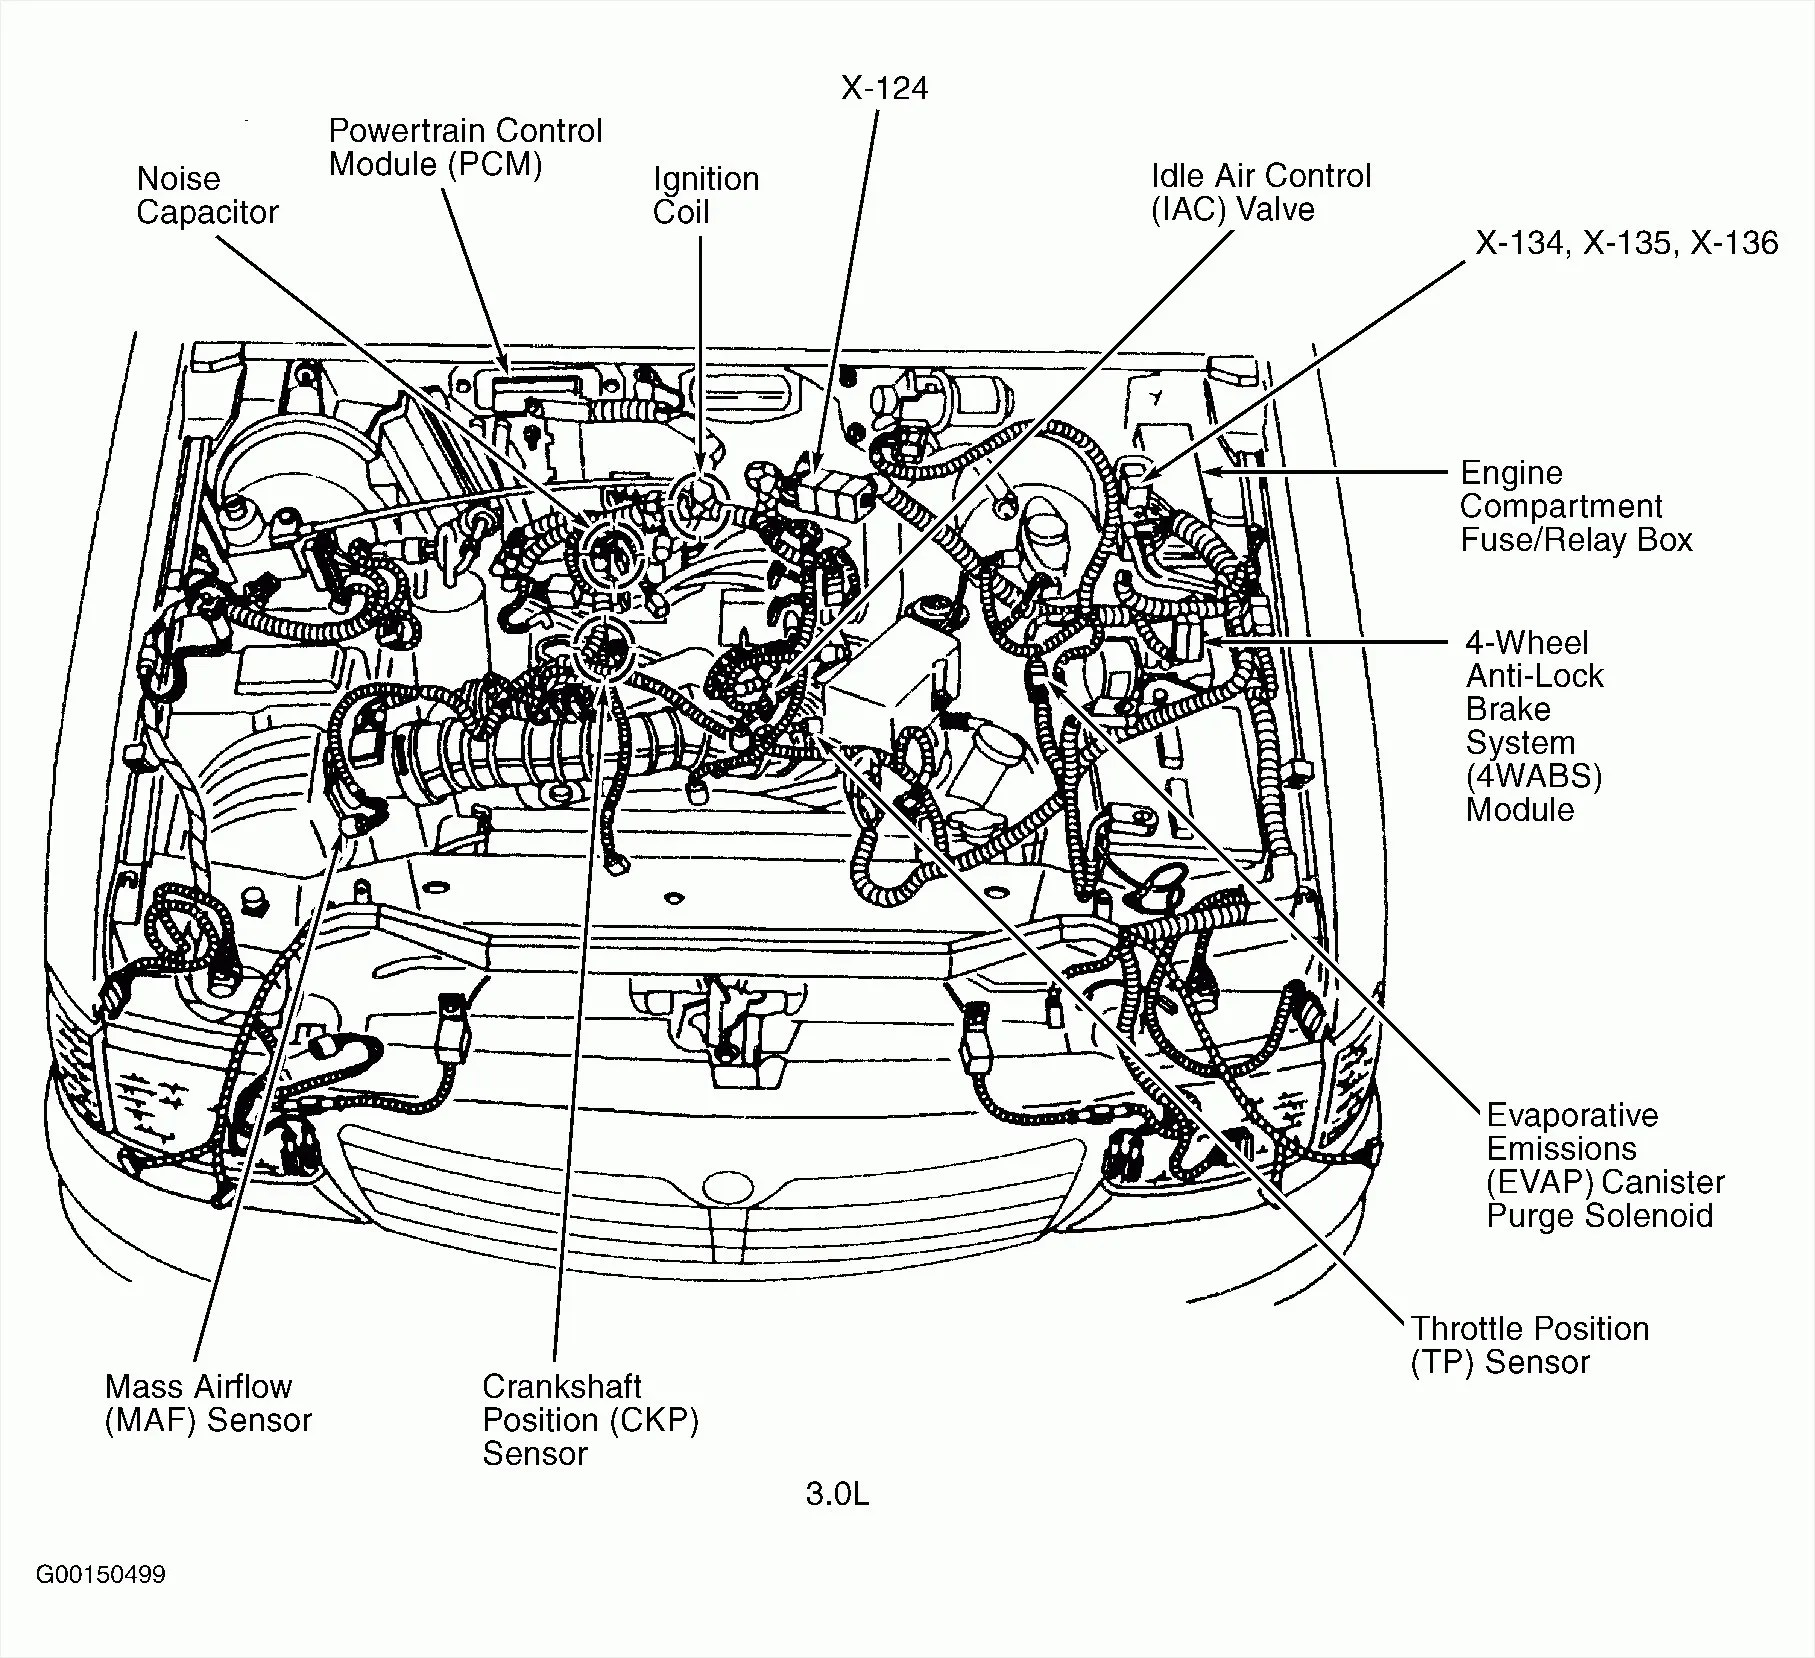 hight resolution of dodge caravan 3 3l engine diagram wiring diagram forward 07 dodge caravan purge solenoid wiring diagram